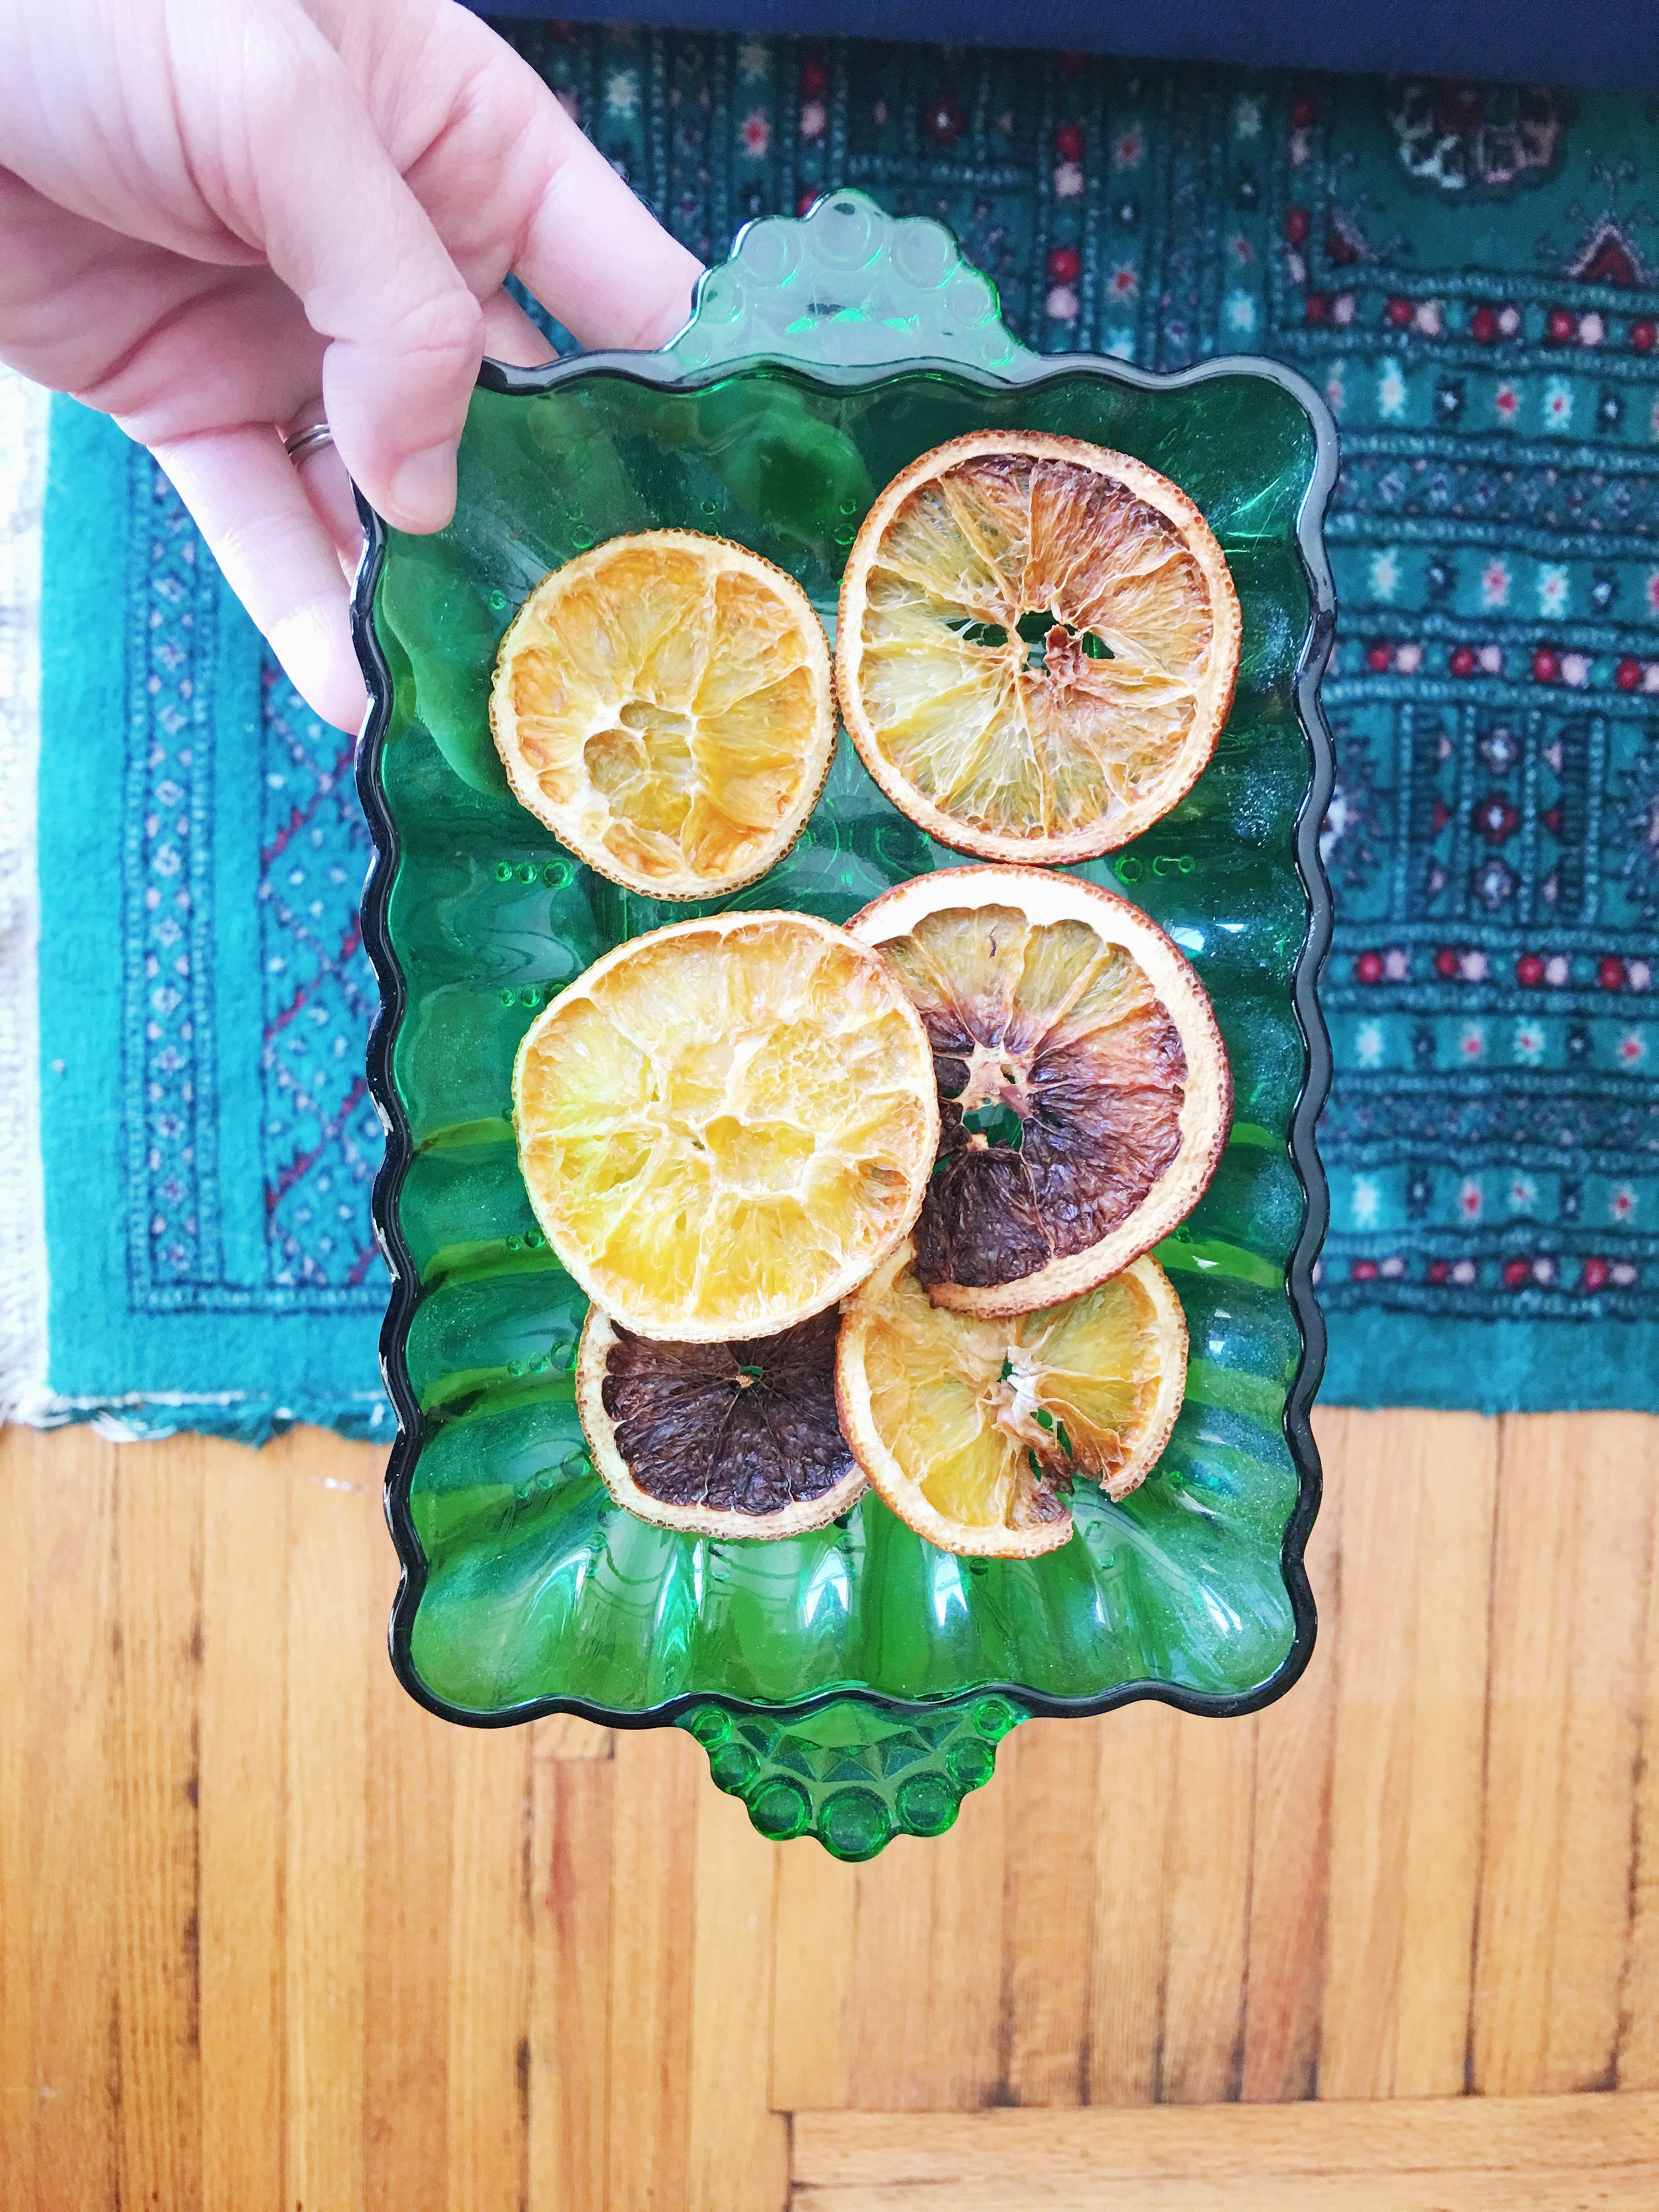 The slightly too burned oranges live in a pretty green tray.